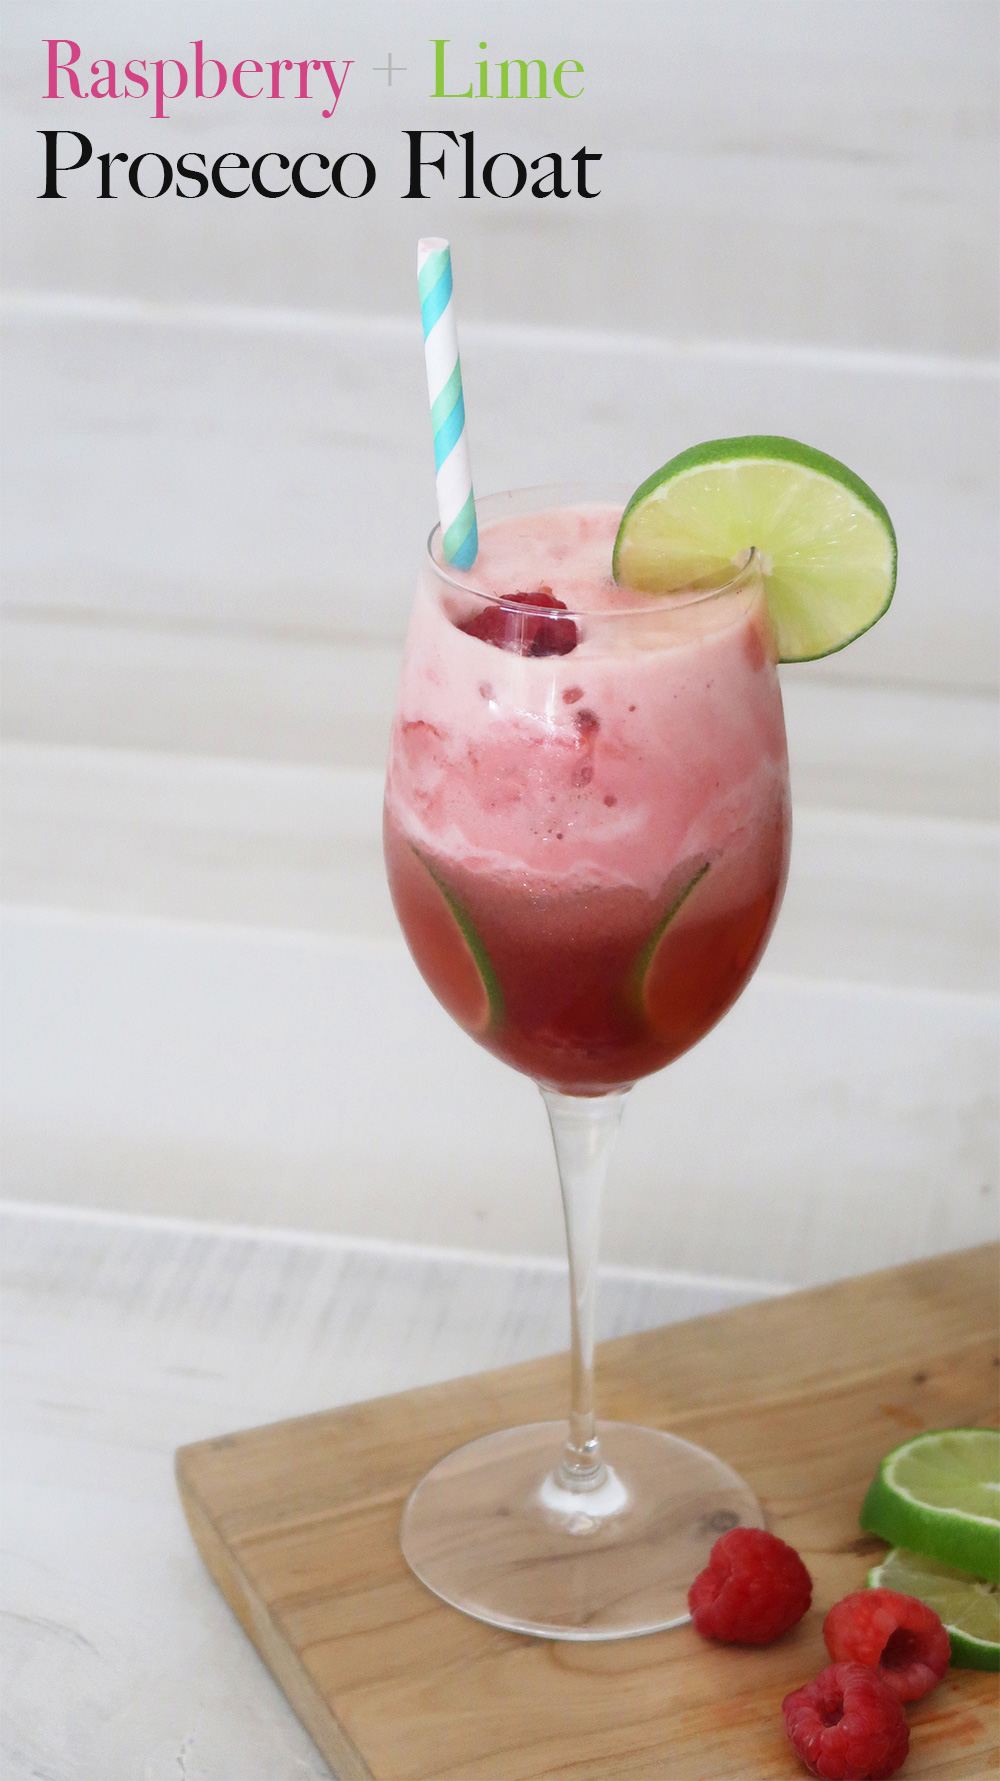 Raspberry-and-lime-prosecco-float.jpg